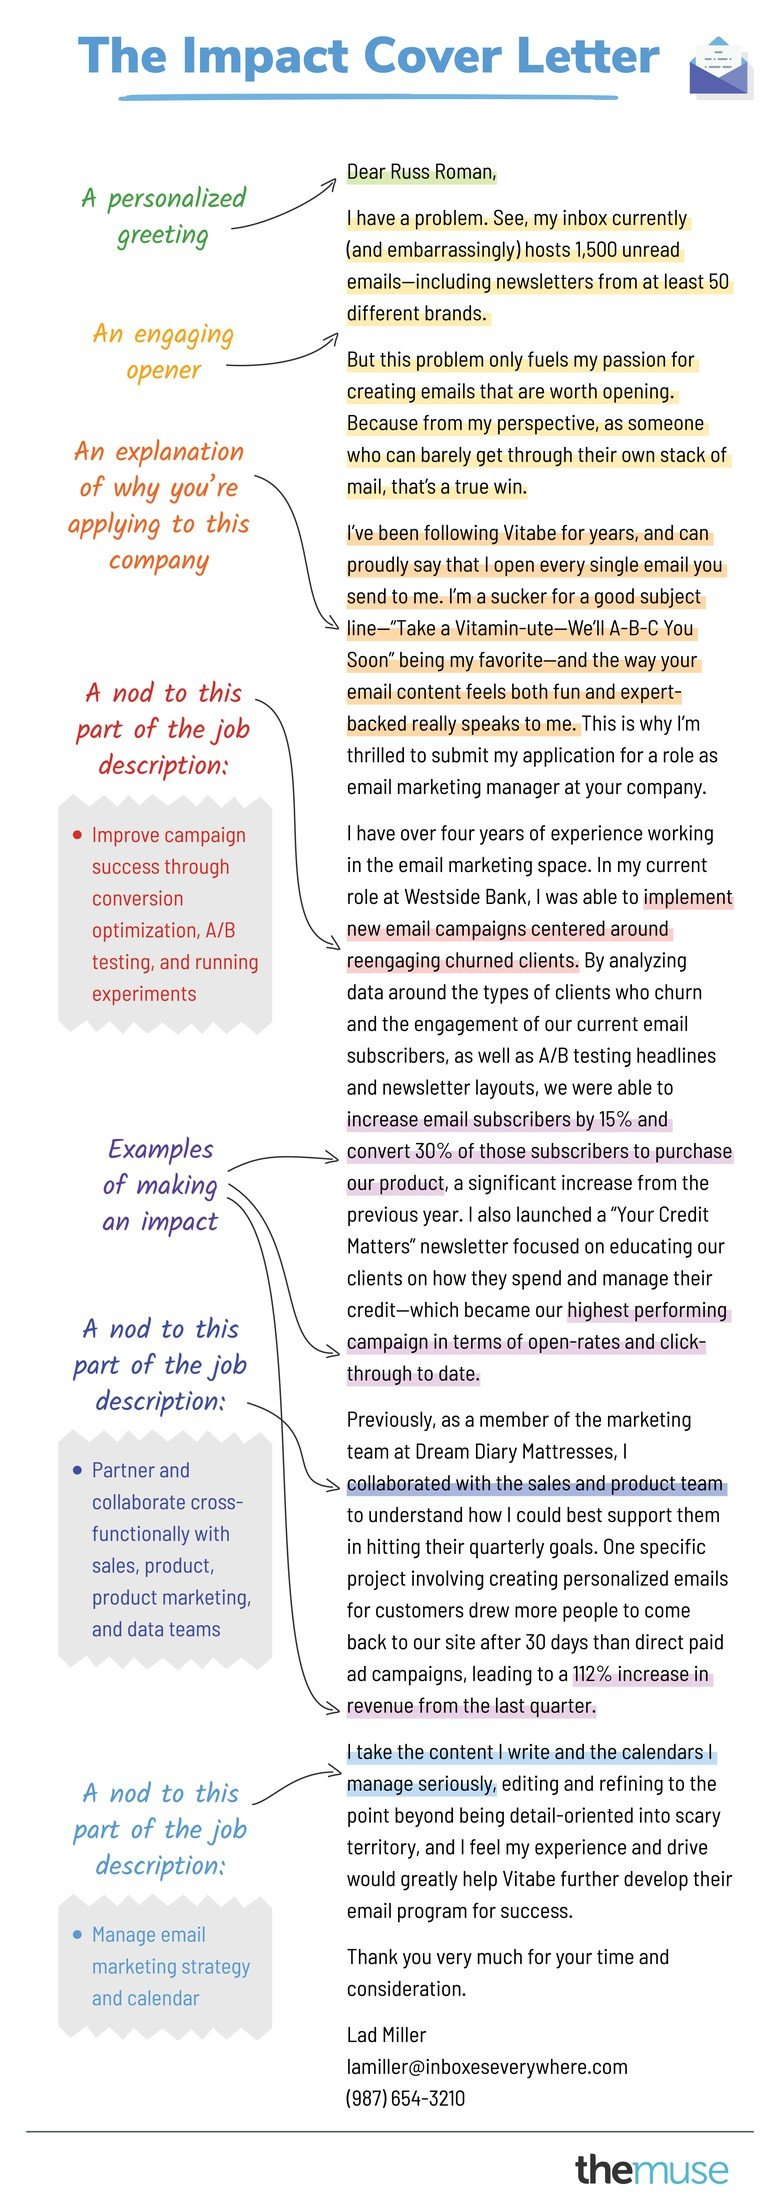 Generic Cover Letter Greeting from pilbox.themuse.com